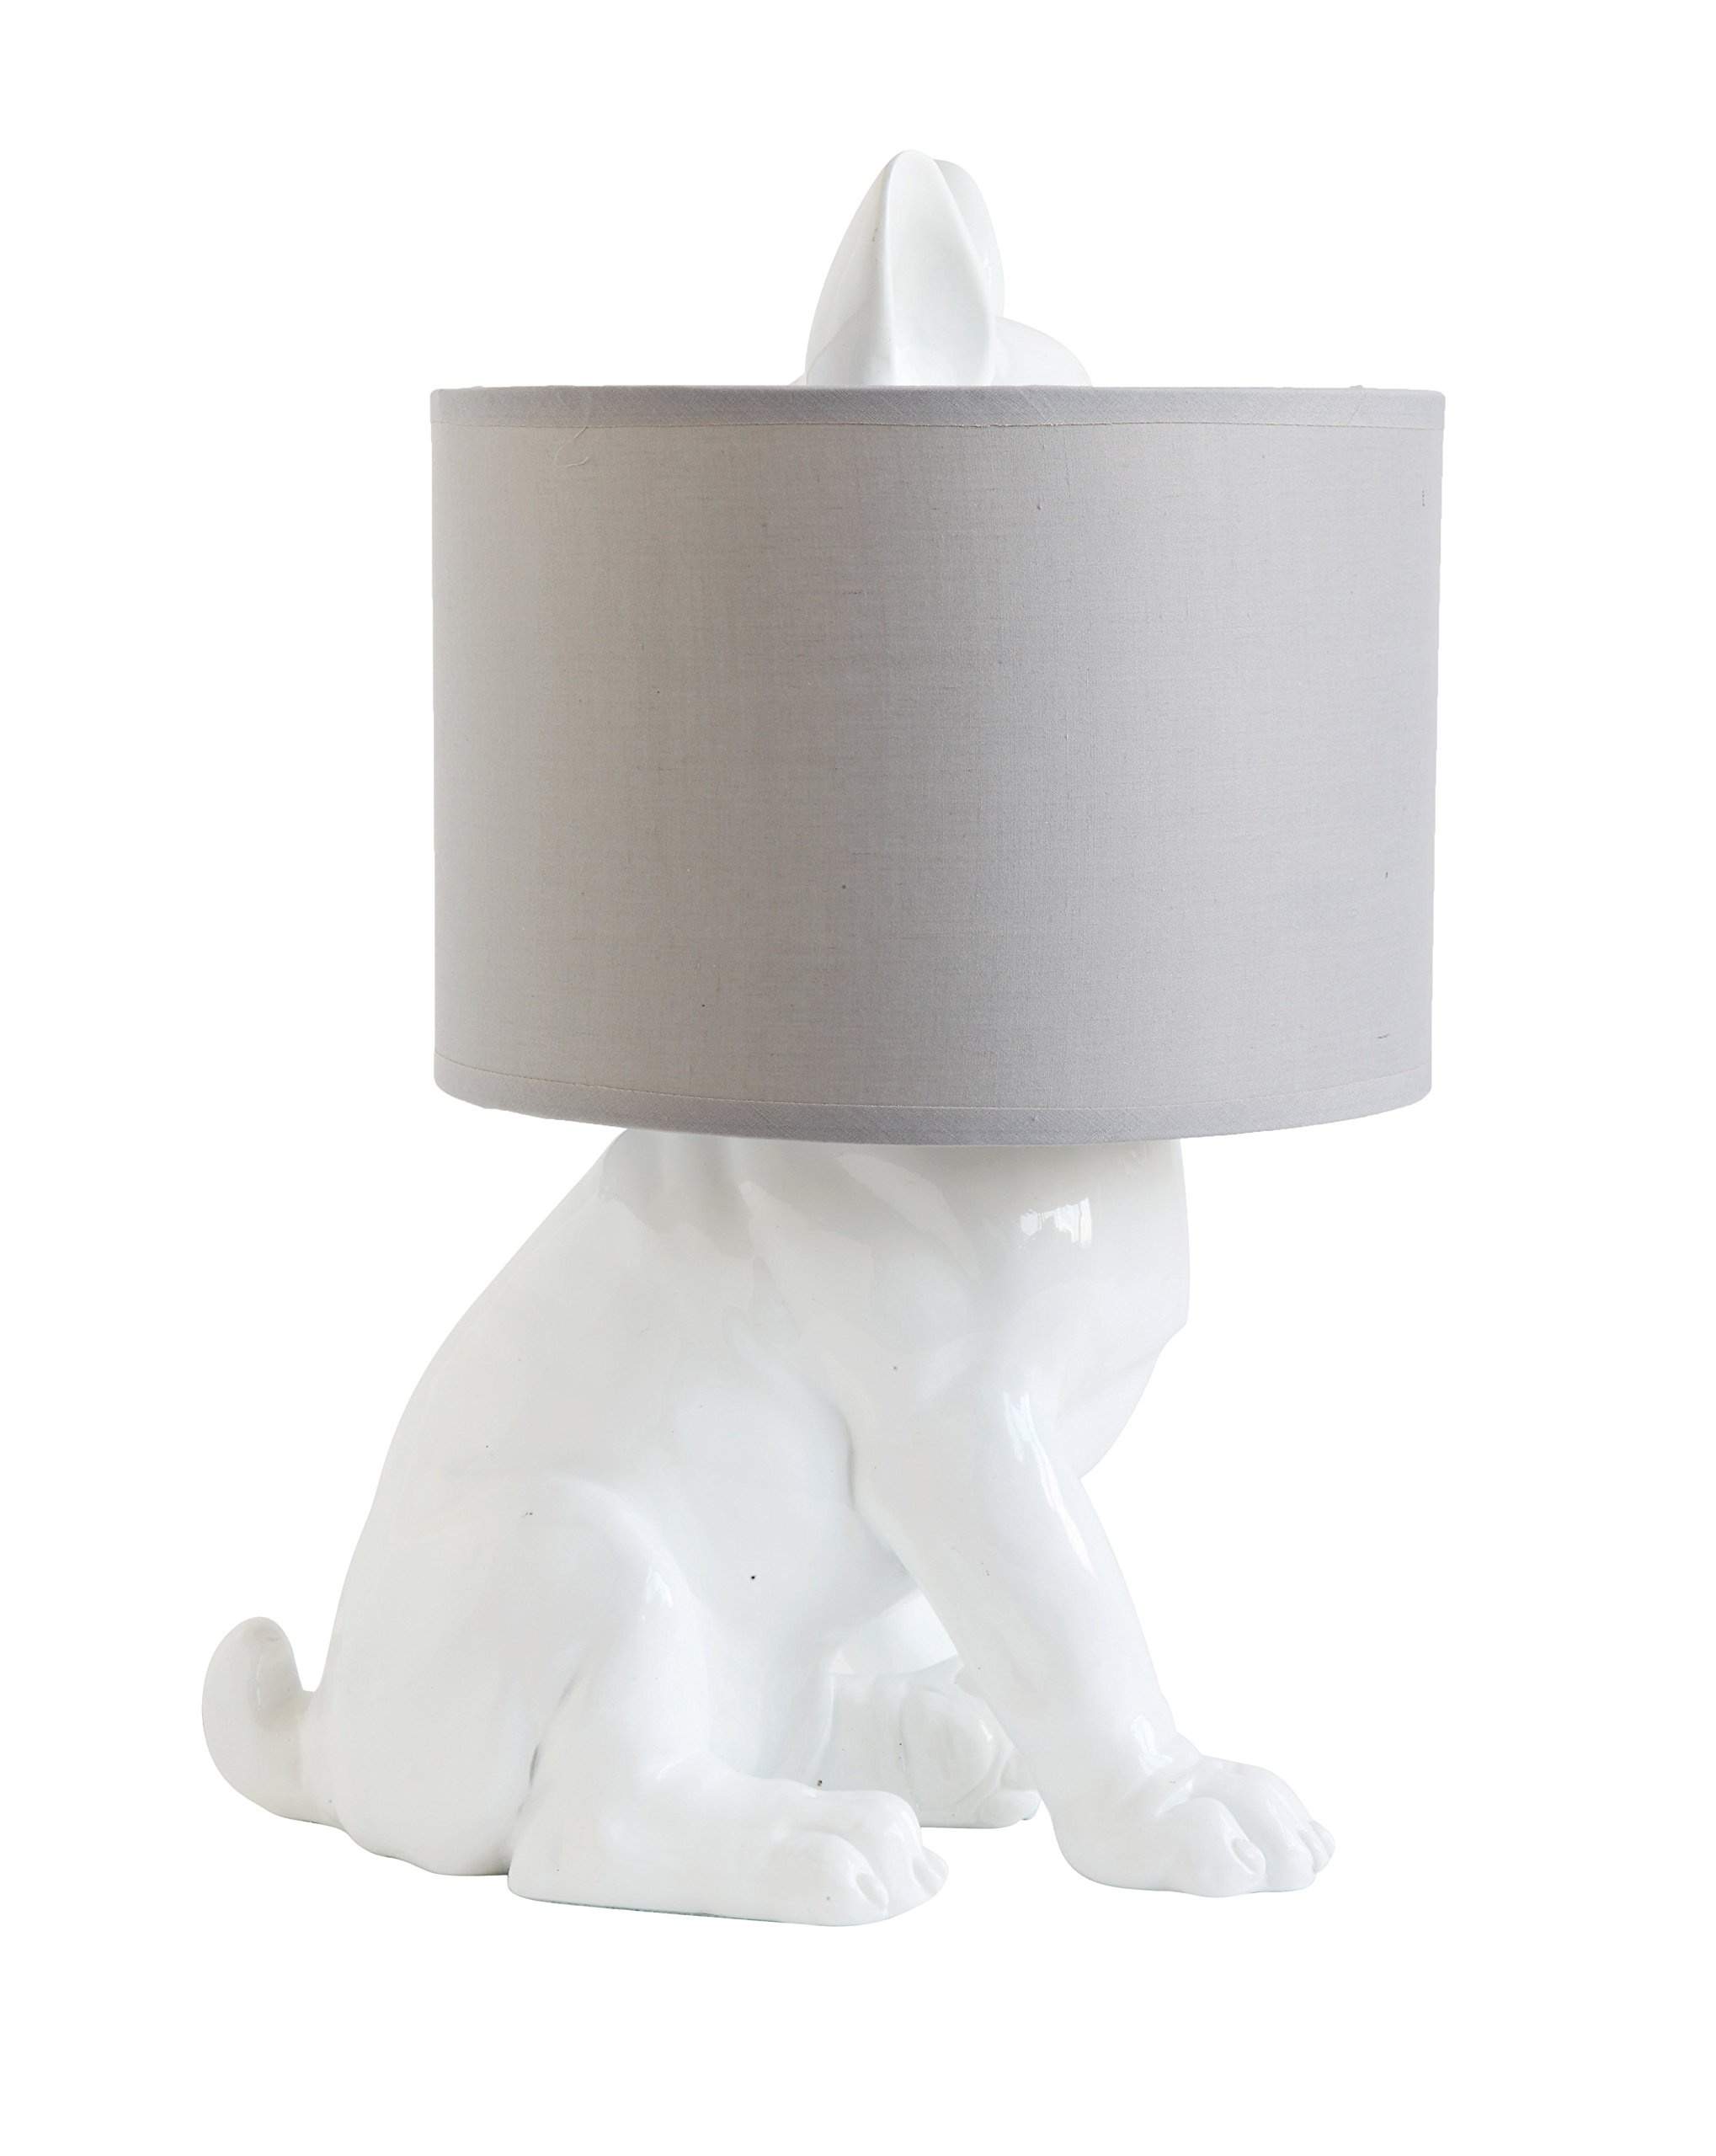 Creative Co-op Dog Shaped Lamp with Linen Shade